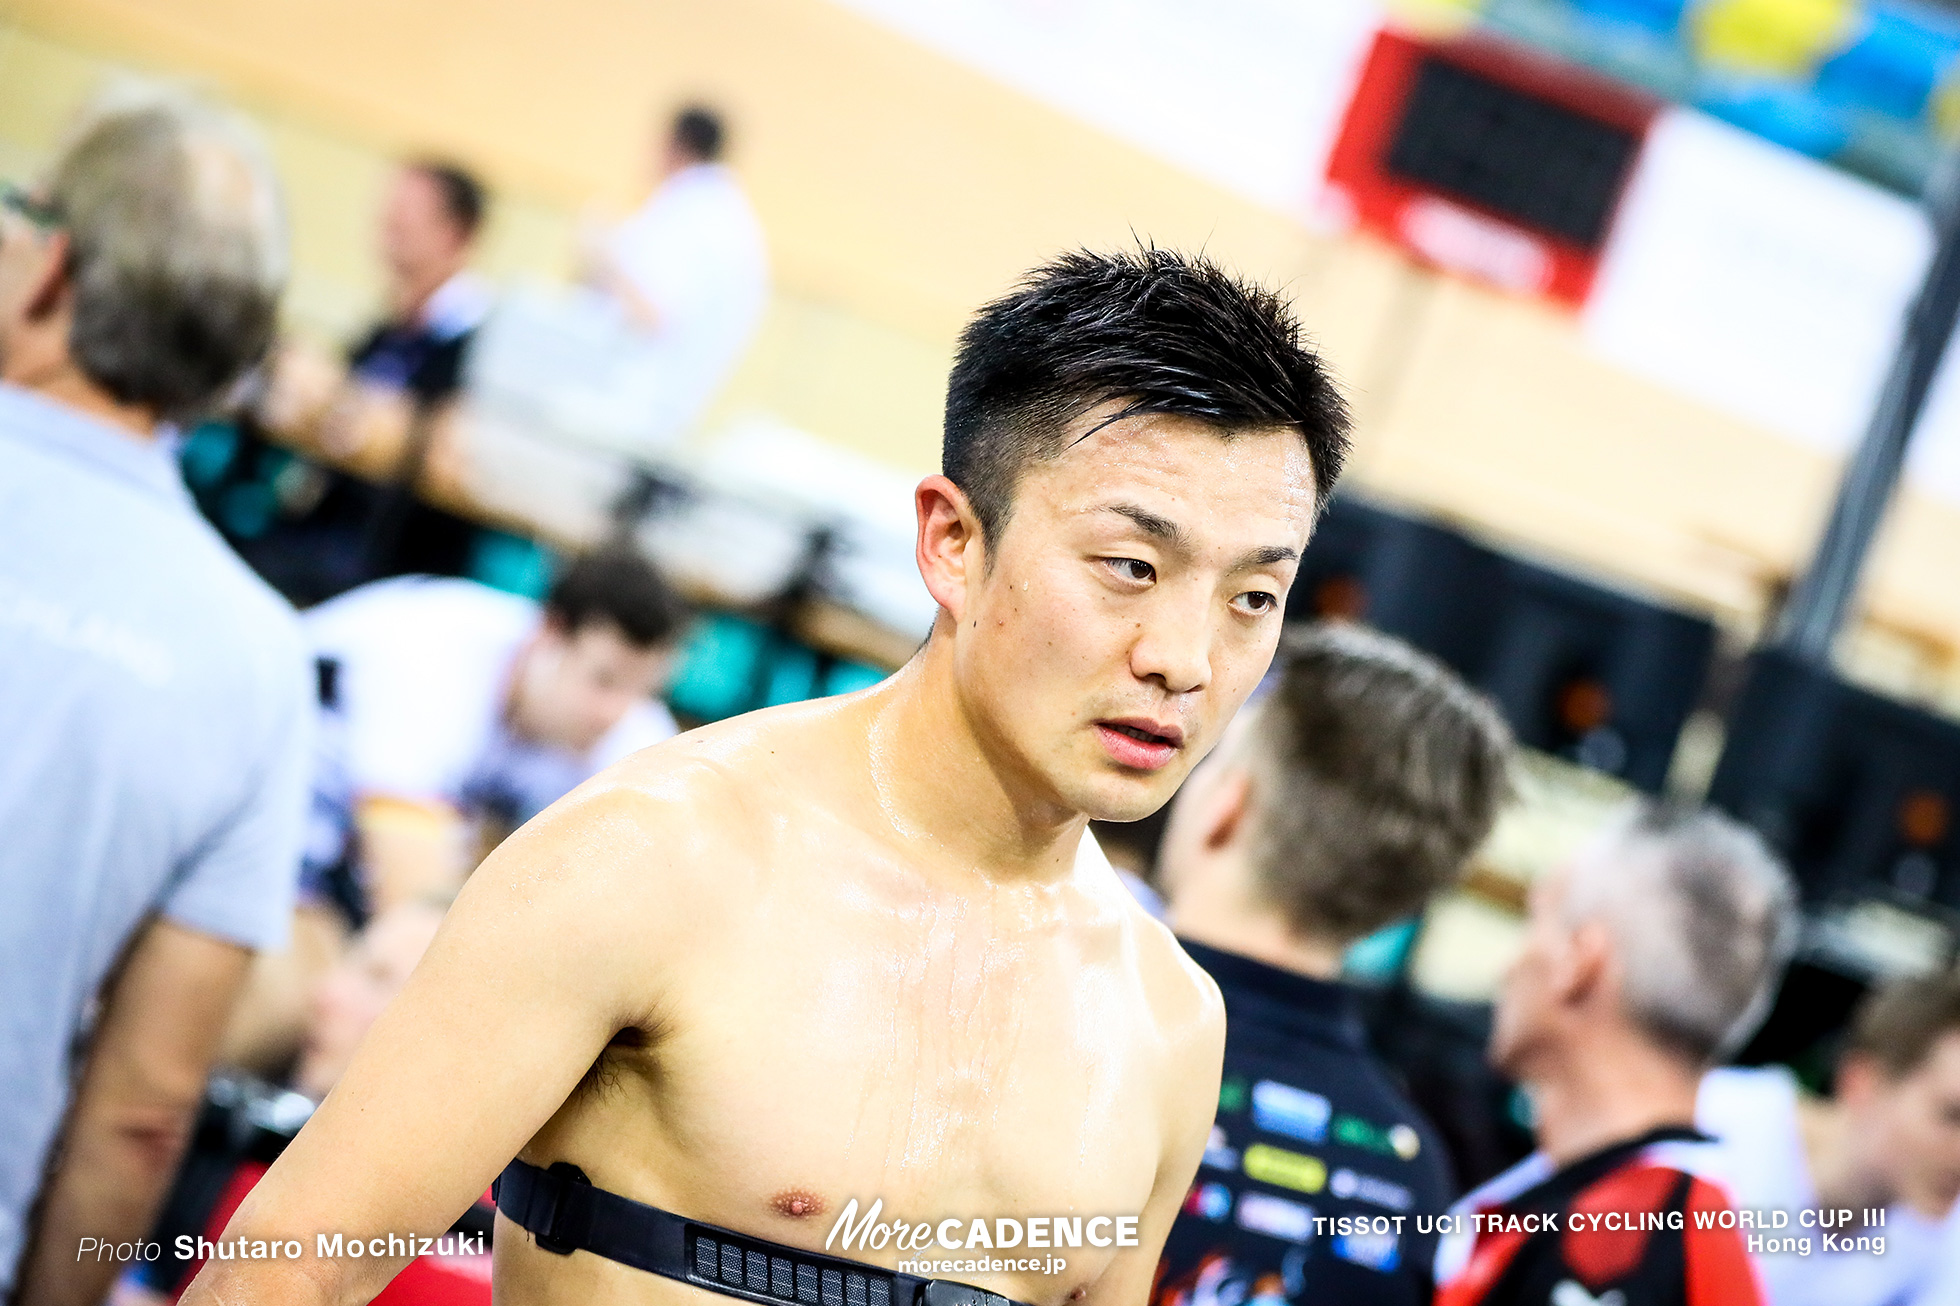 1st Round / Men's Team Pursuit / TISSOT UCI TRACK CYCLING WORLD CUP III, Hong Kong, 窪木一茂